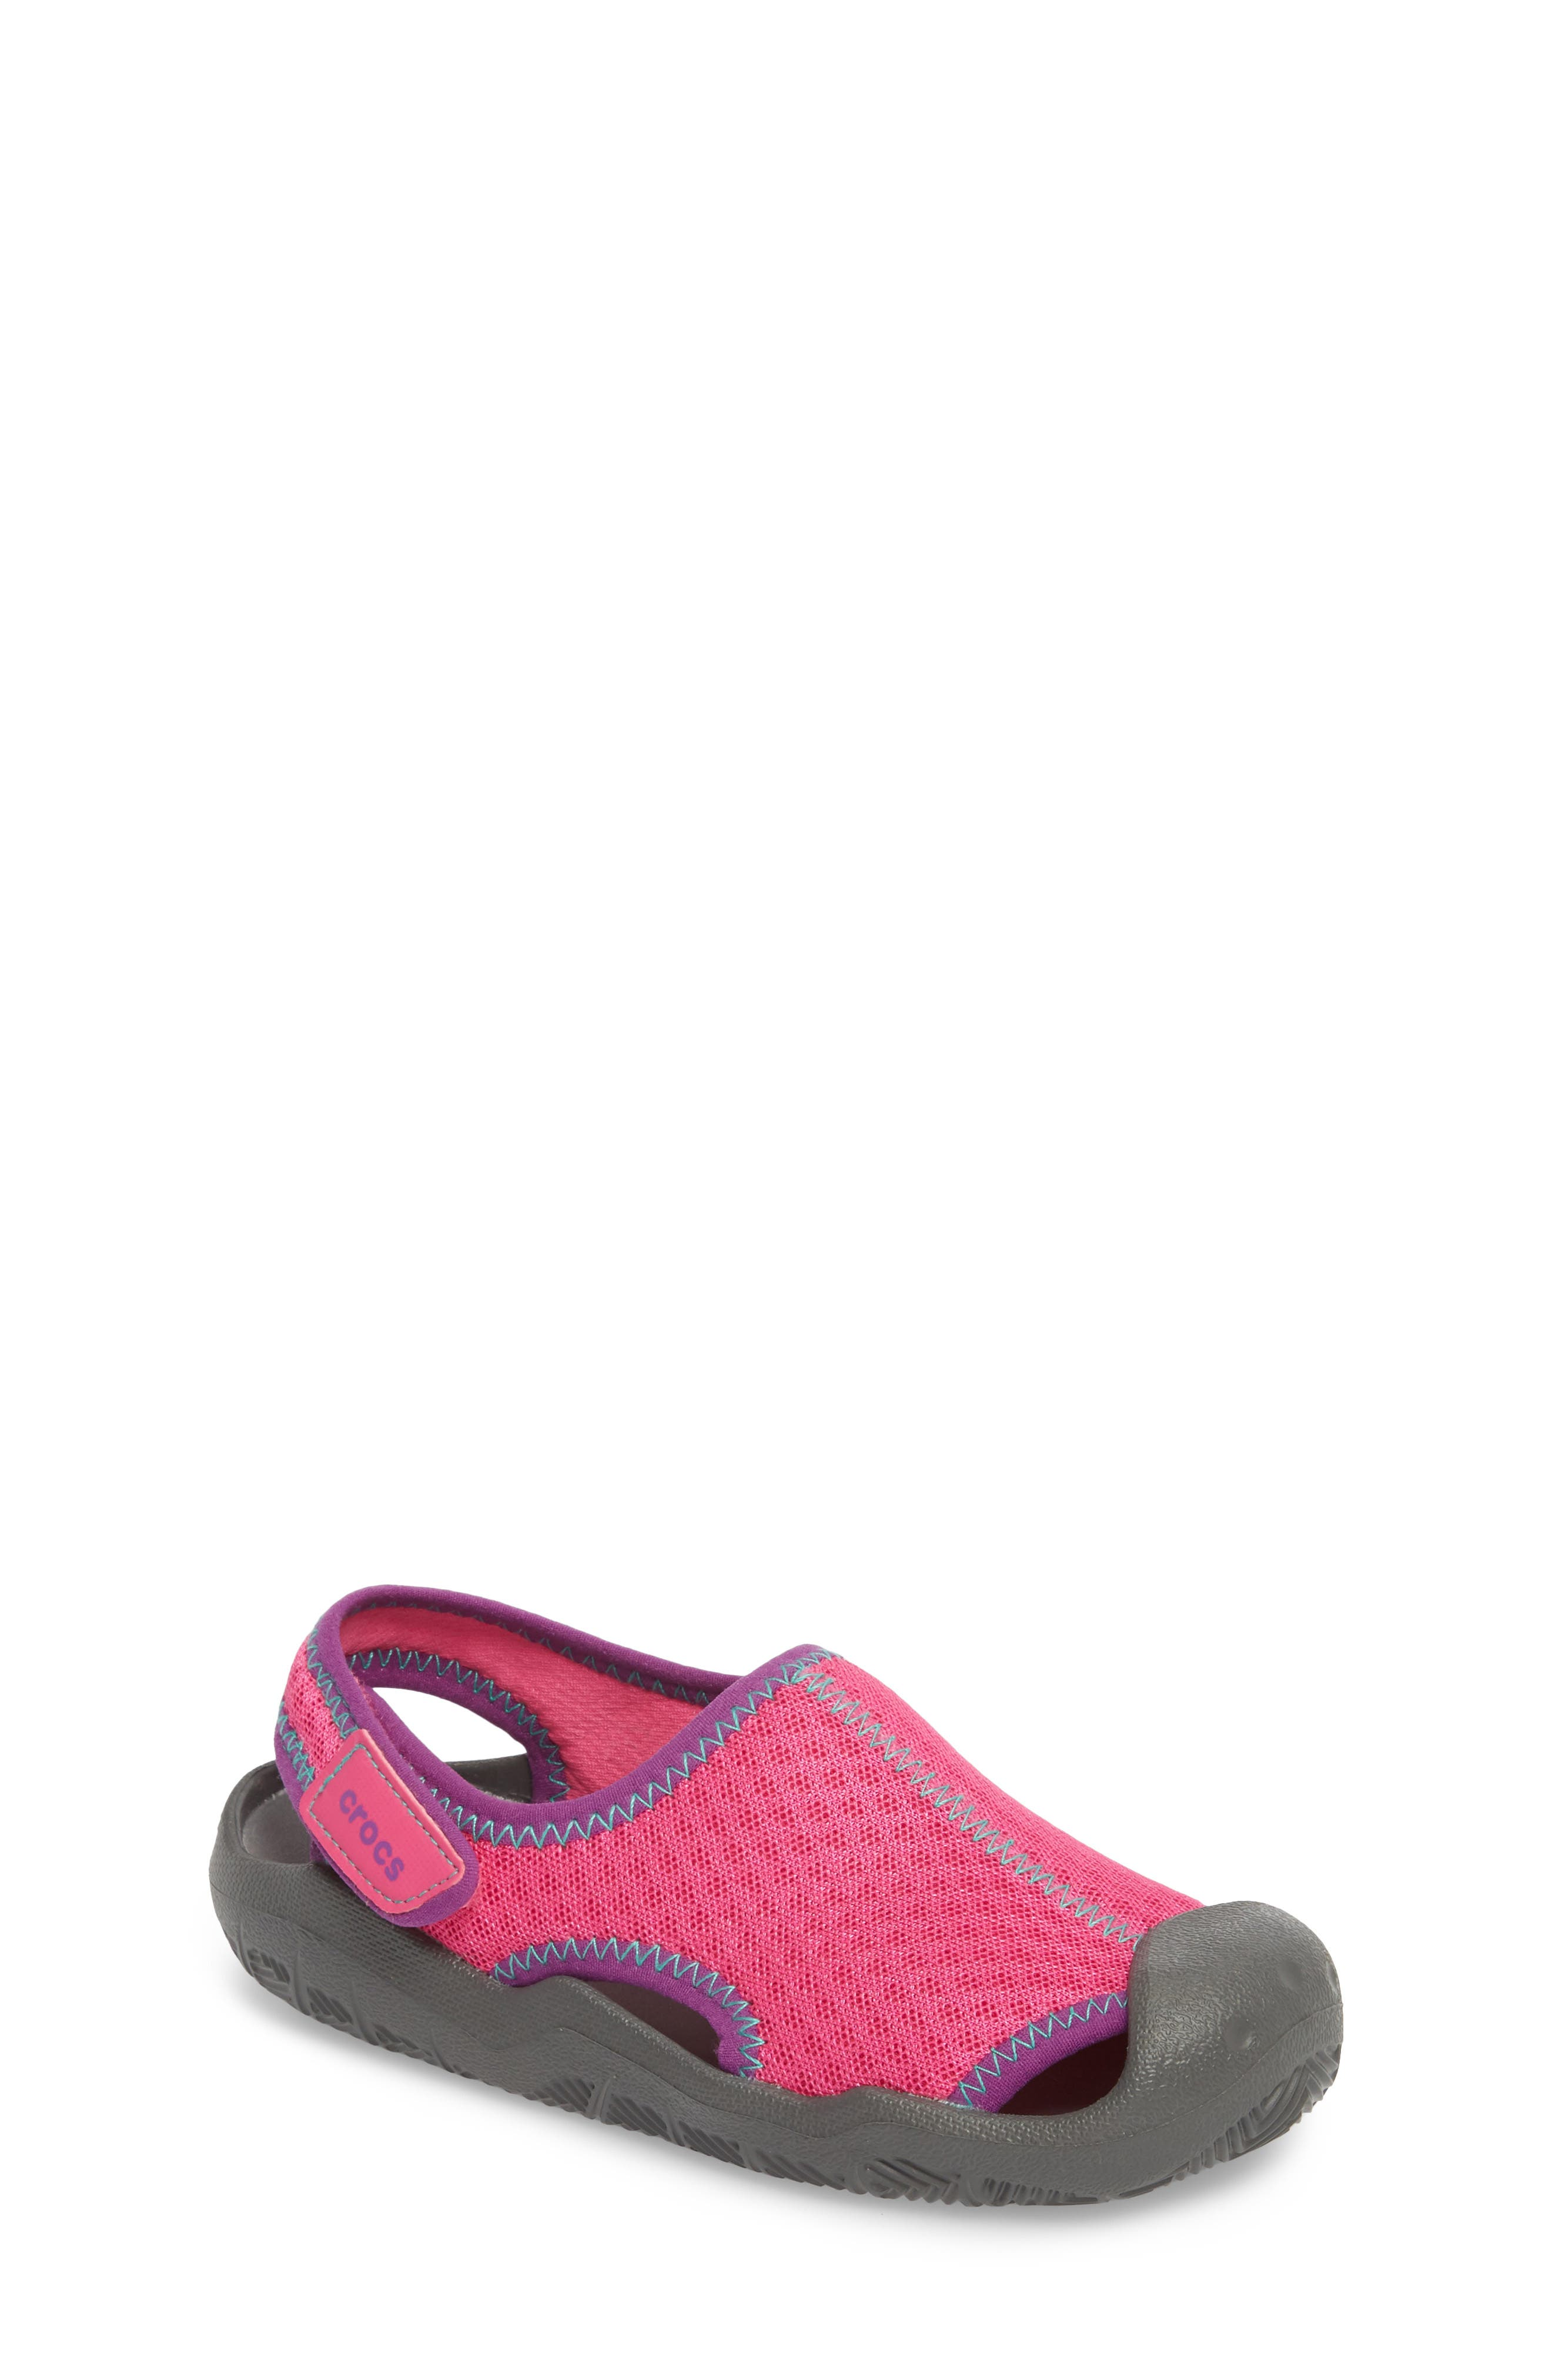 Swiftwater Sandal,                             Main thumbnail 5, color,